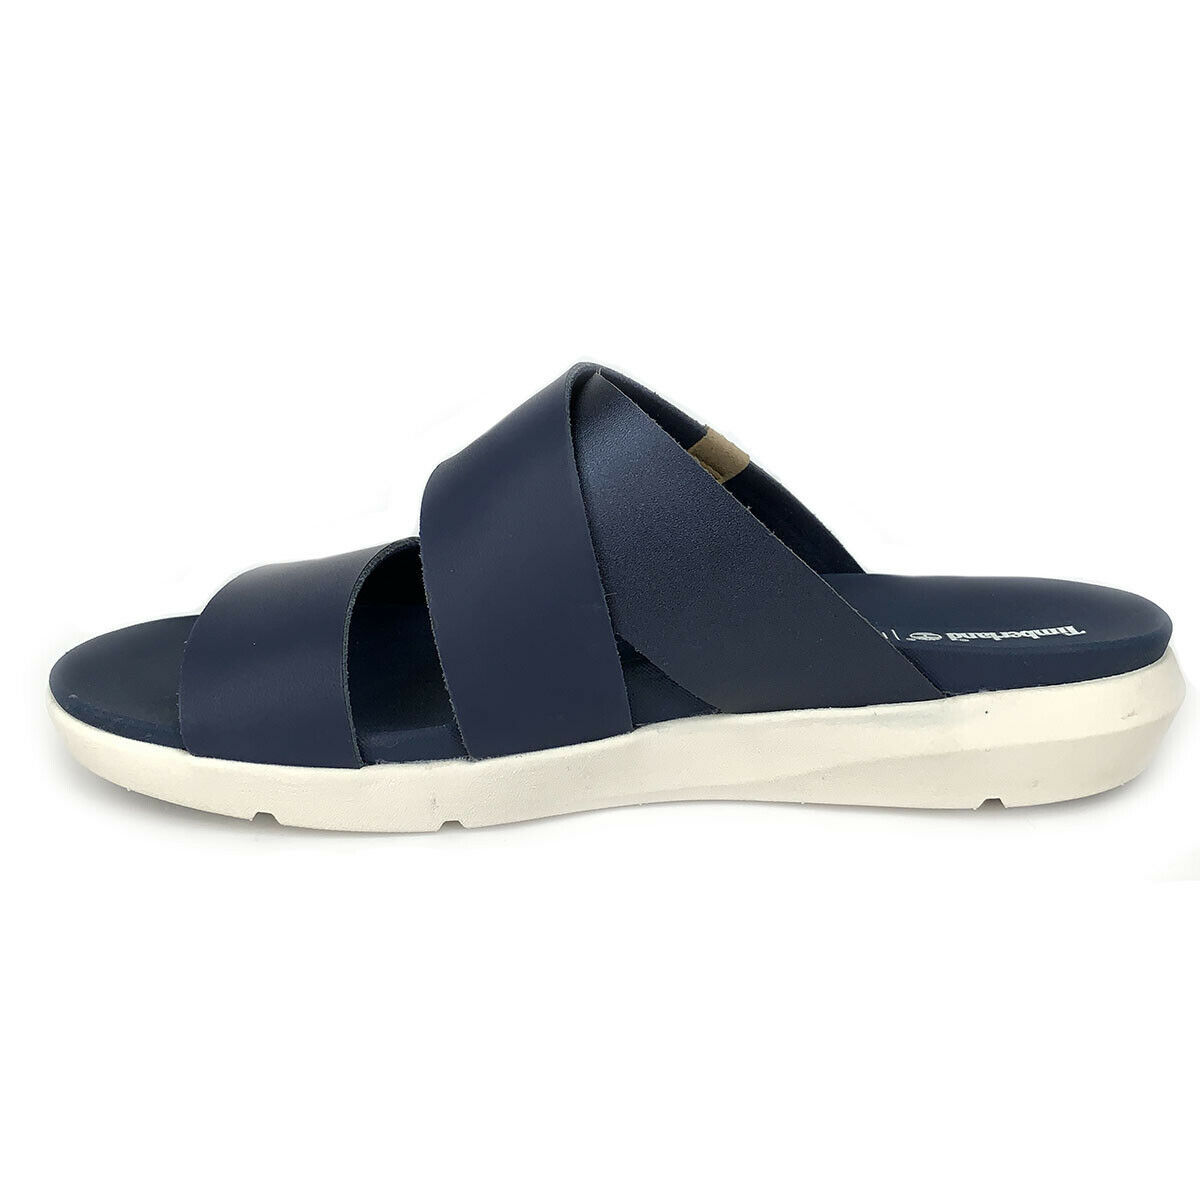 Timberland Women's Wilesport Navy Slip On Sandals A1XPH image 4